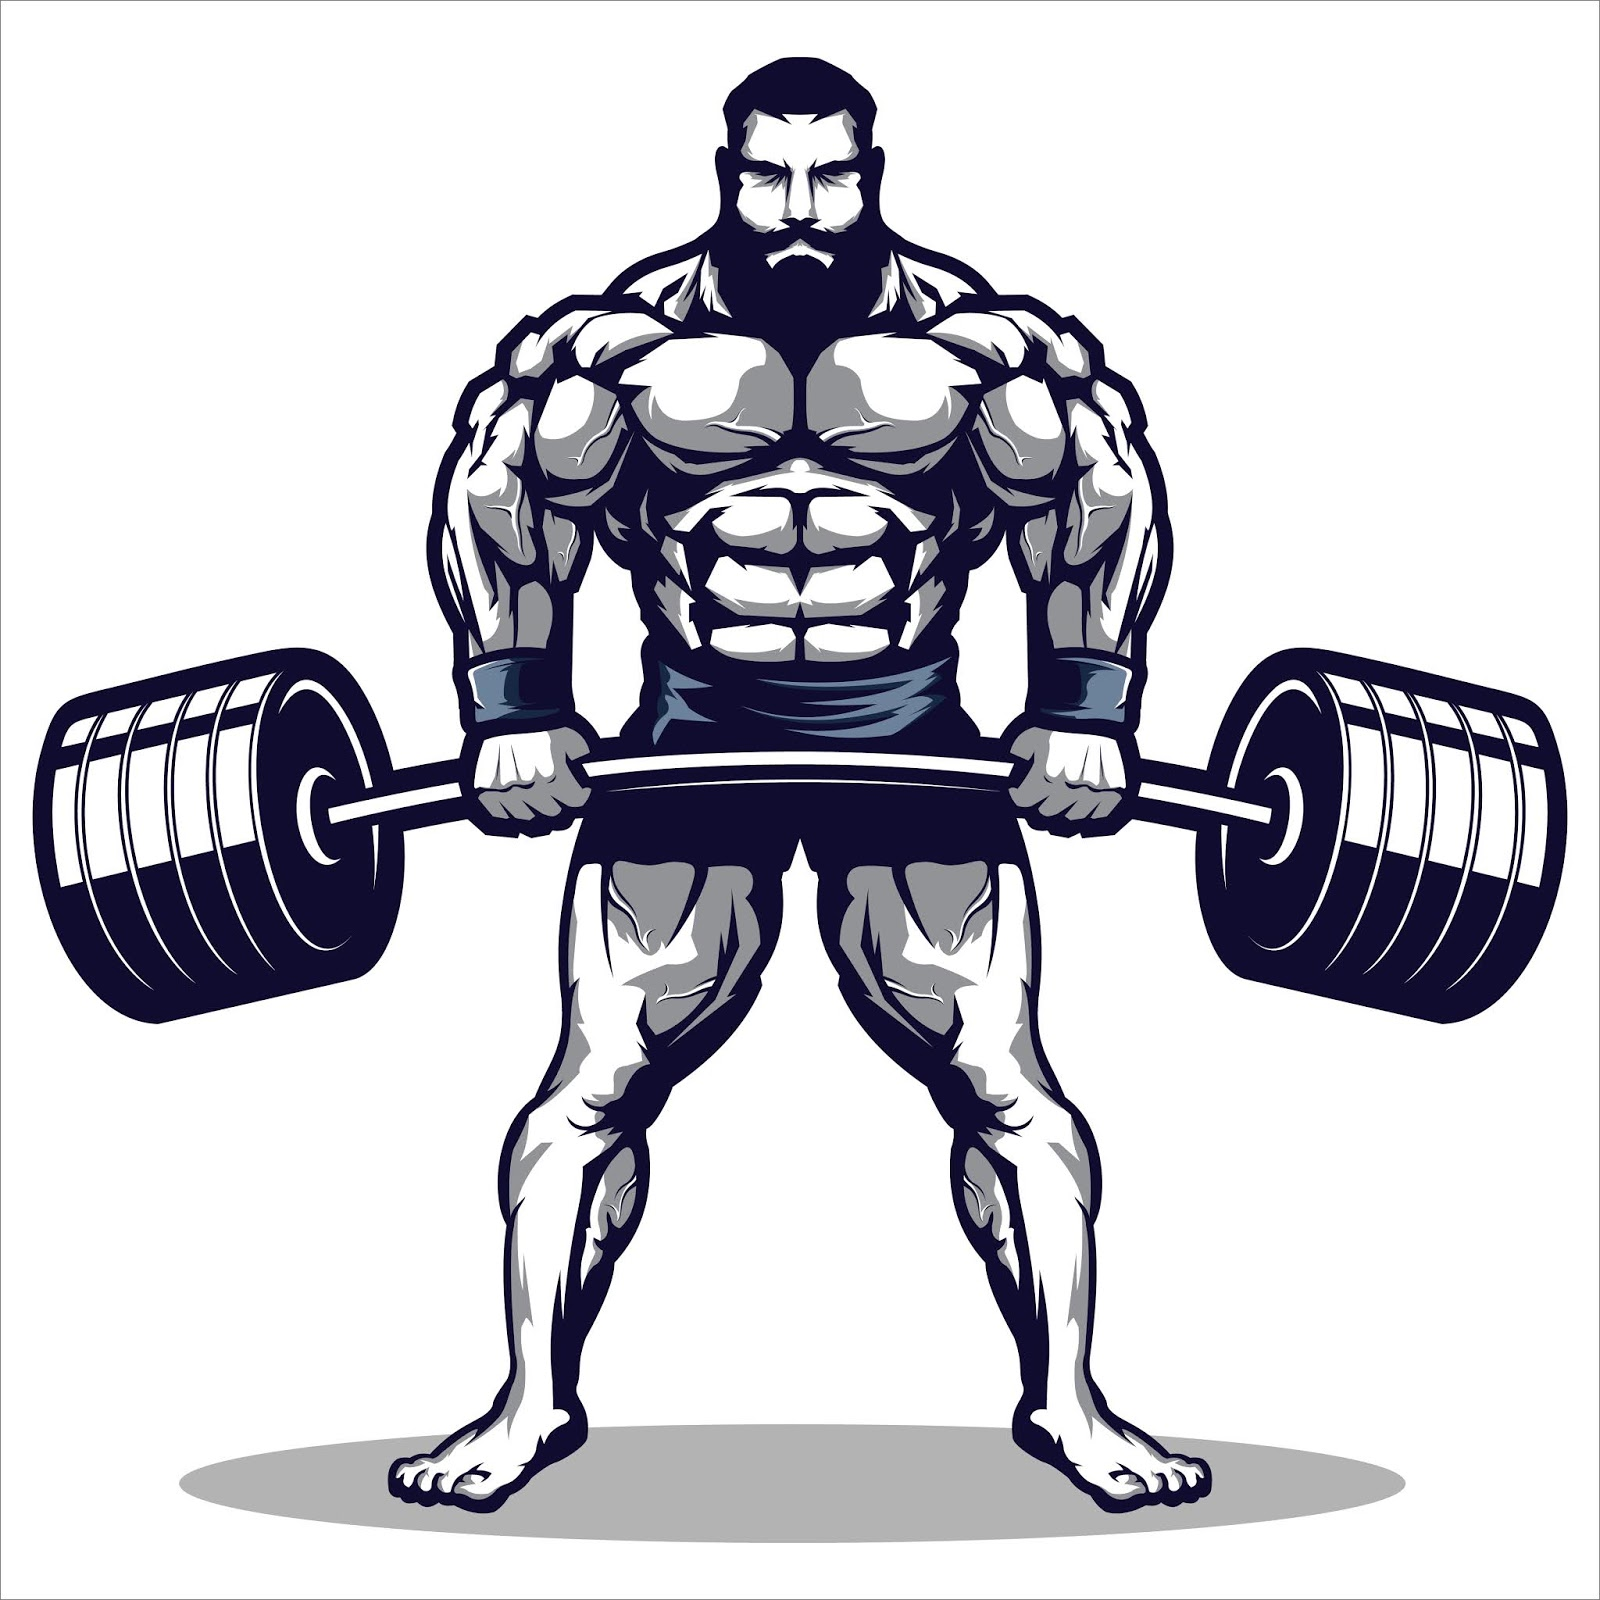 Mascot Gym Man Illustration Free Download Vector CDR, AI, EPS and PNG Formats